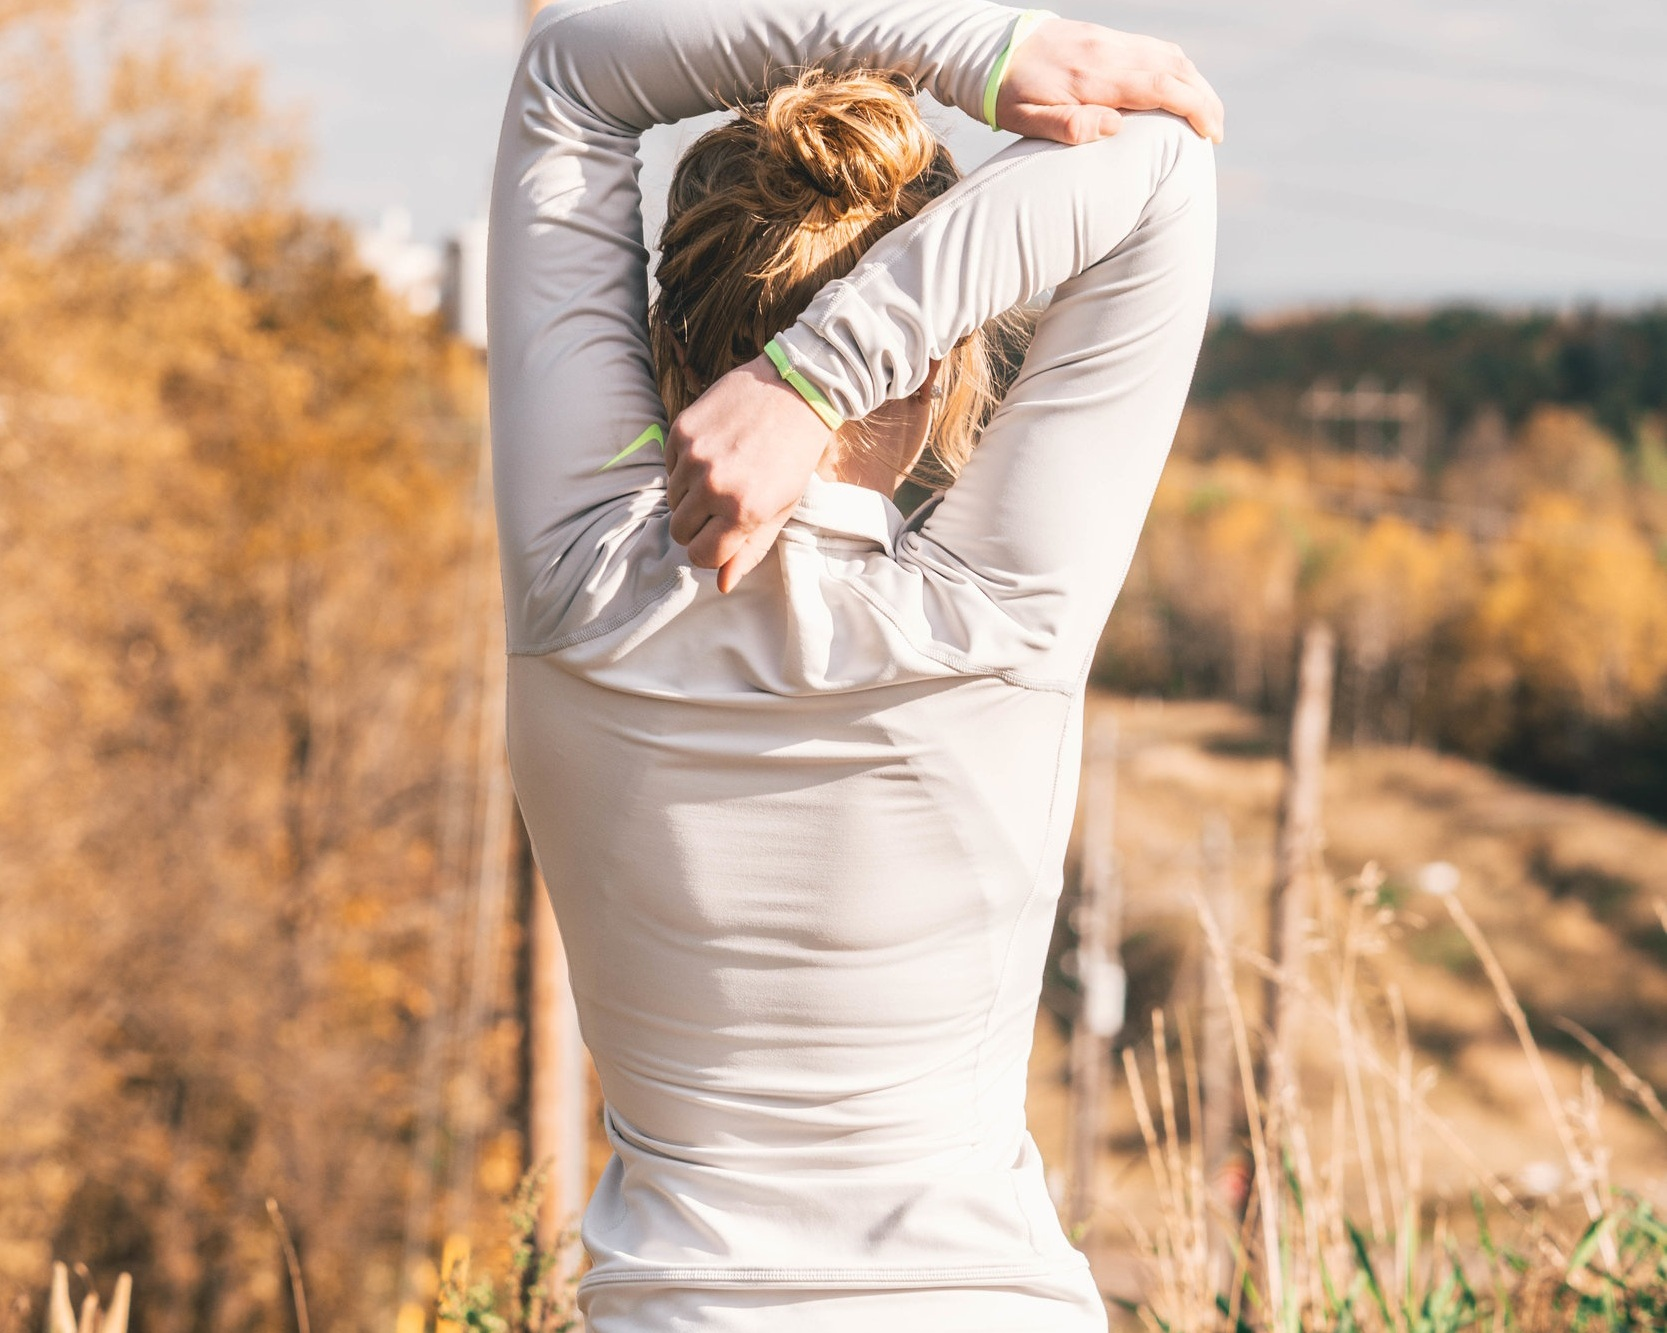 POSTURE - Postural abnormalities are another frequently overlooked concept that can lead to structural deviations, pain and other health problems. Improved posture will allow one to work more efficiently with less fatigue and limit strain on your body's ligaments and muscles day in and day out.